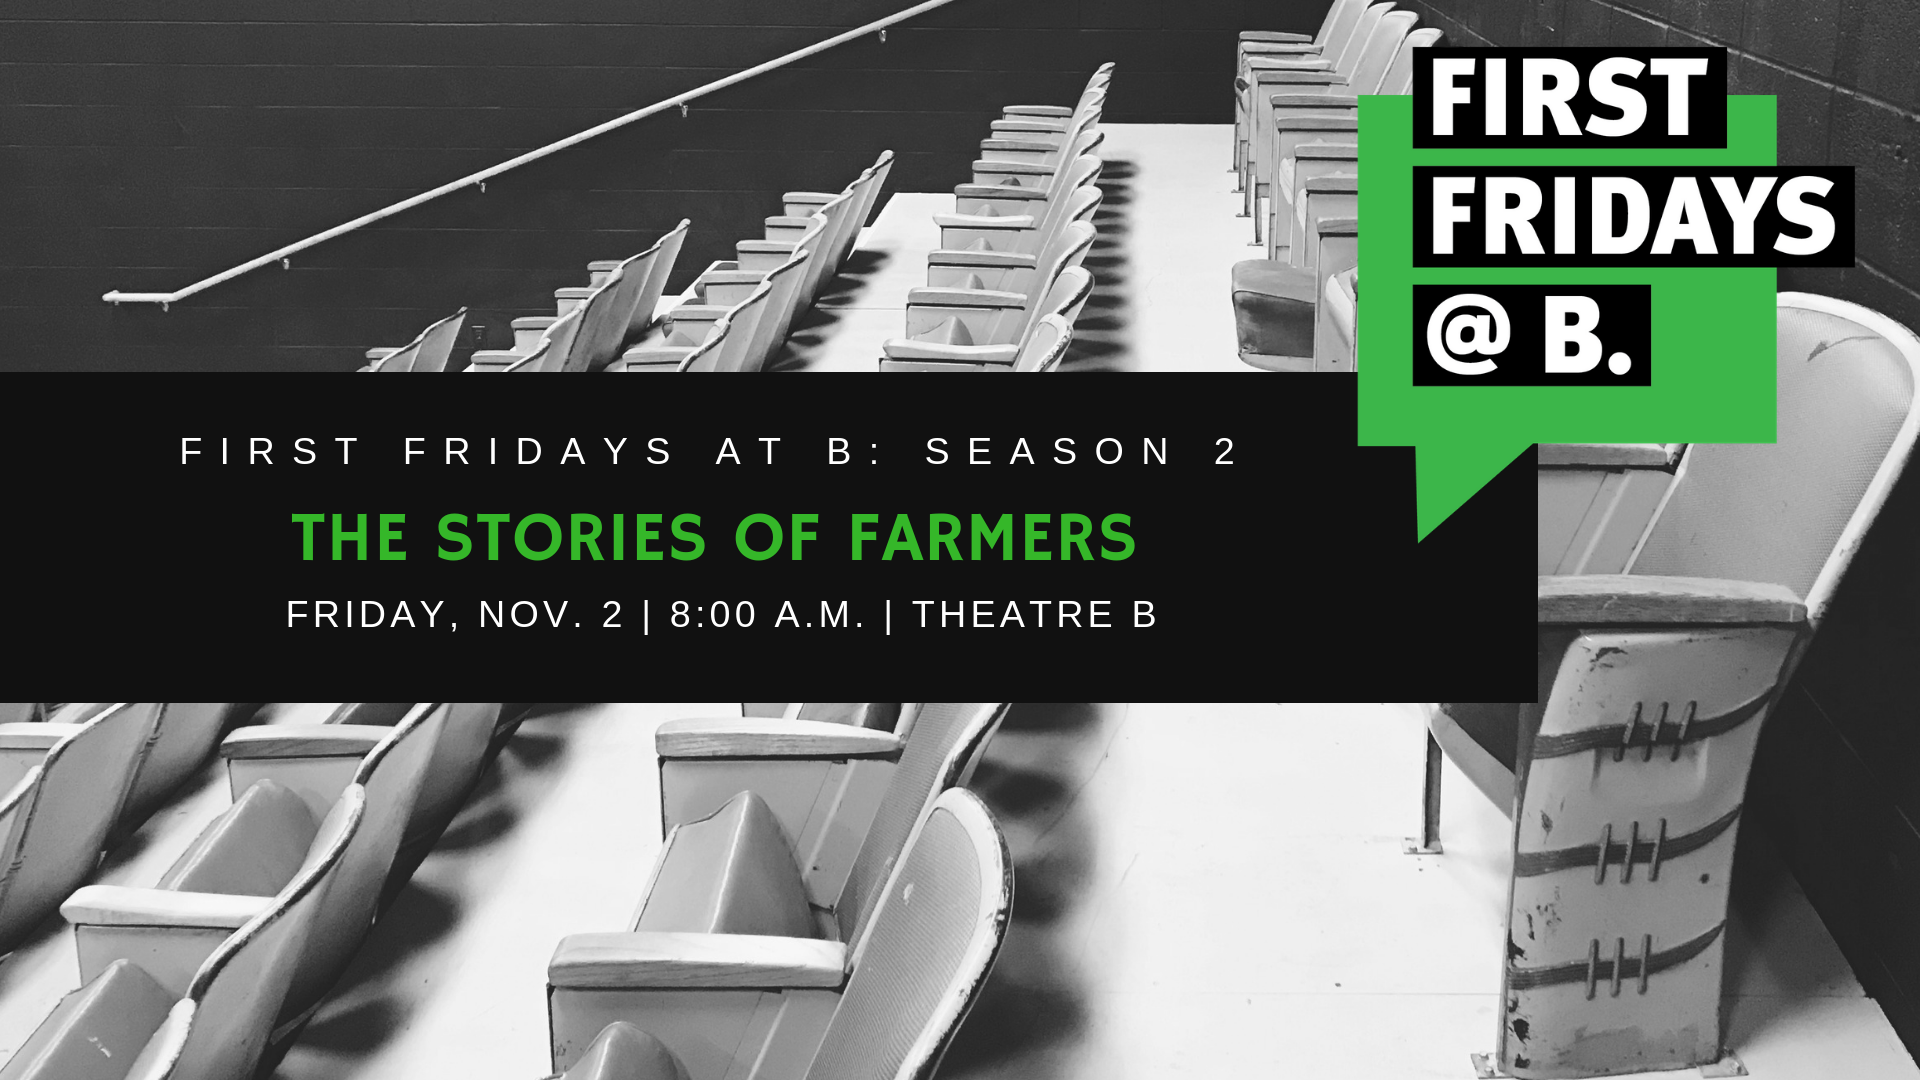 Friday, November 2 - Our November First Fridays focused on the stories of farmers in and around the Fargo-Moorhead and featured Sam Rydell of Nurtured Plains Farm, Amber & Ross Lockhart of Heart and Soil Farm, and Jaclyn Weber of Folcstede Farms.